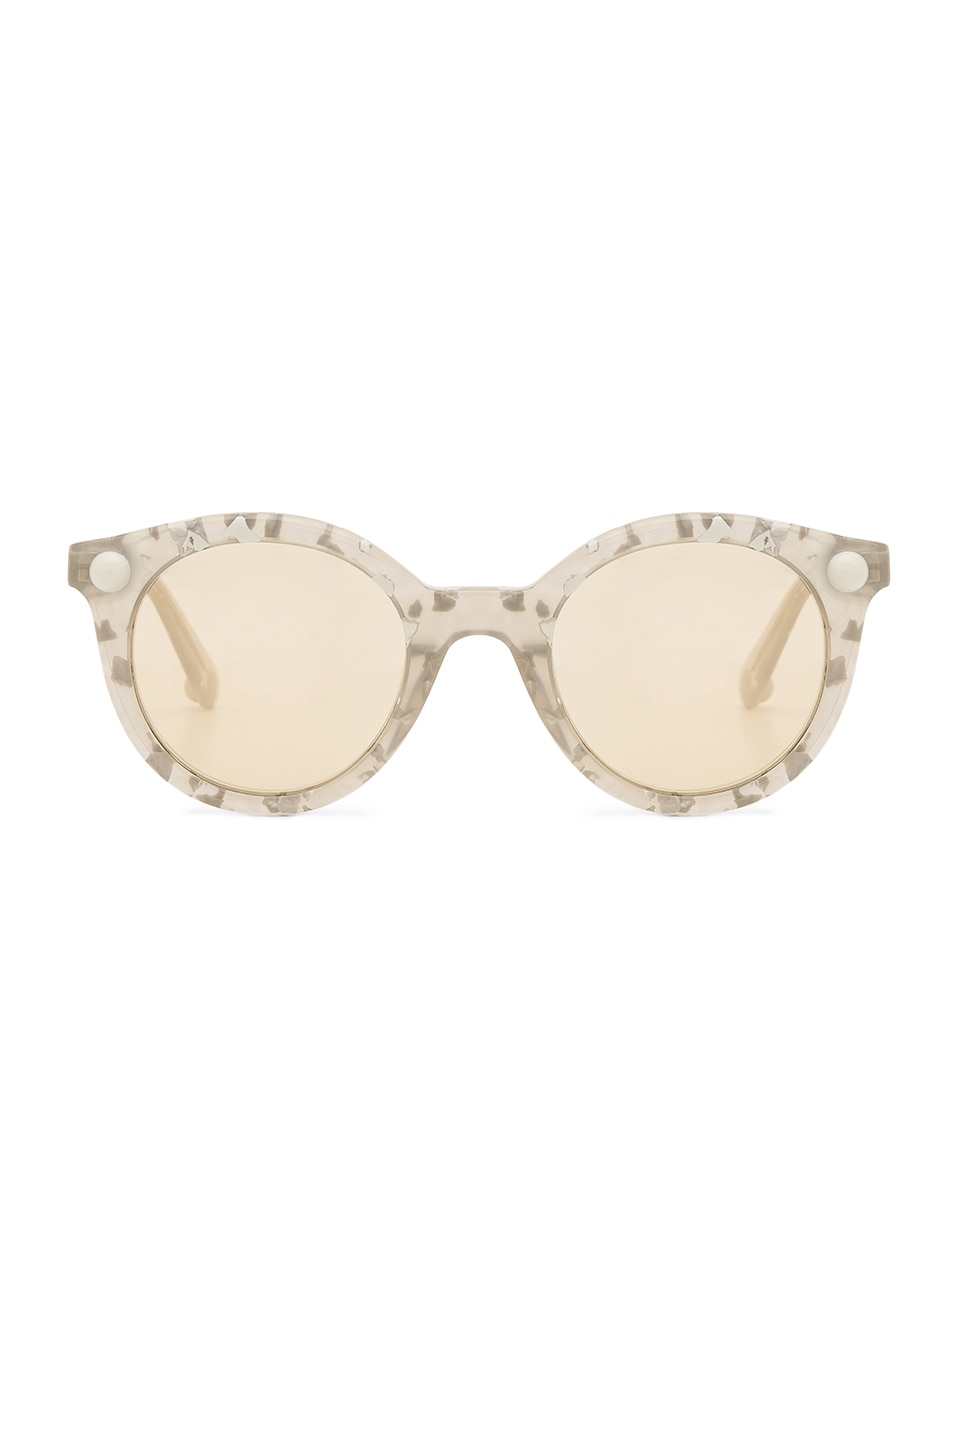 Christopher Kane LUNETTES DE SOLEIL ROUND CAT EYE ACCETATE